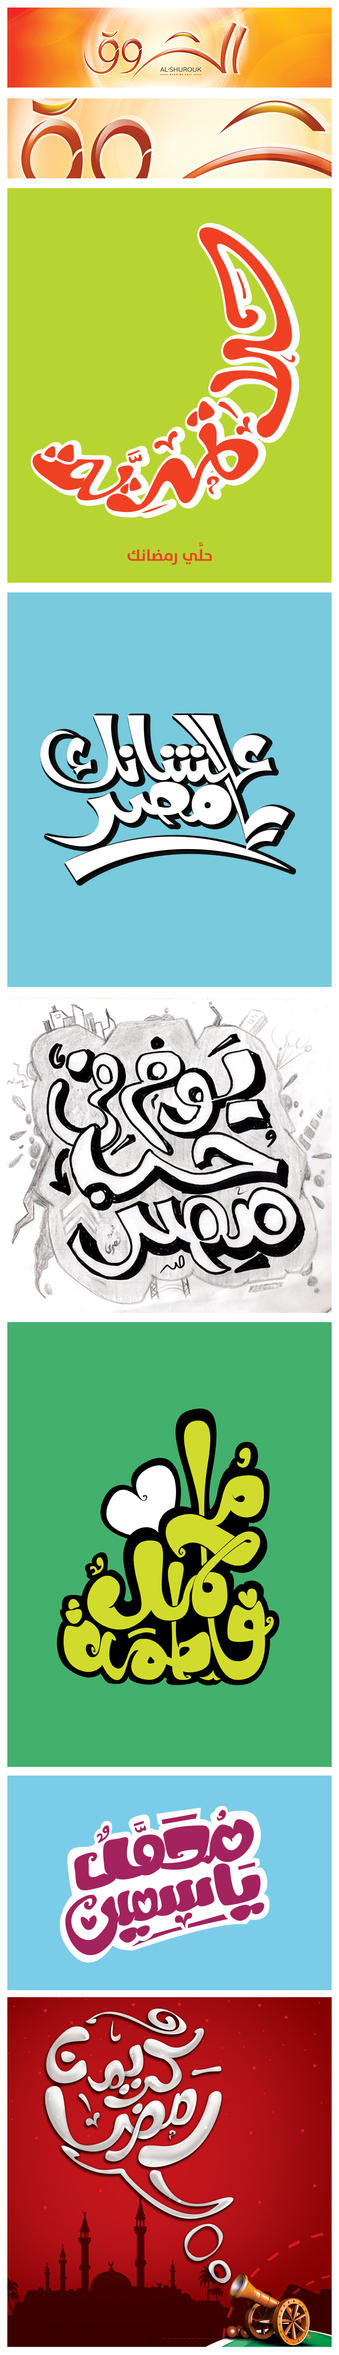 Calligraphy by elhosary